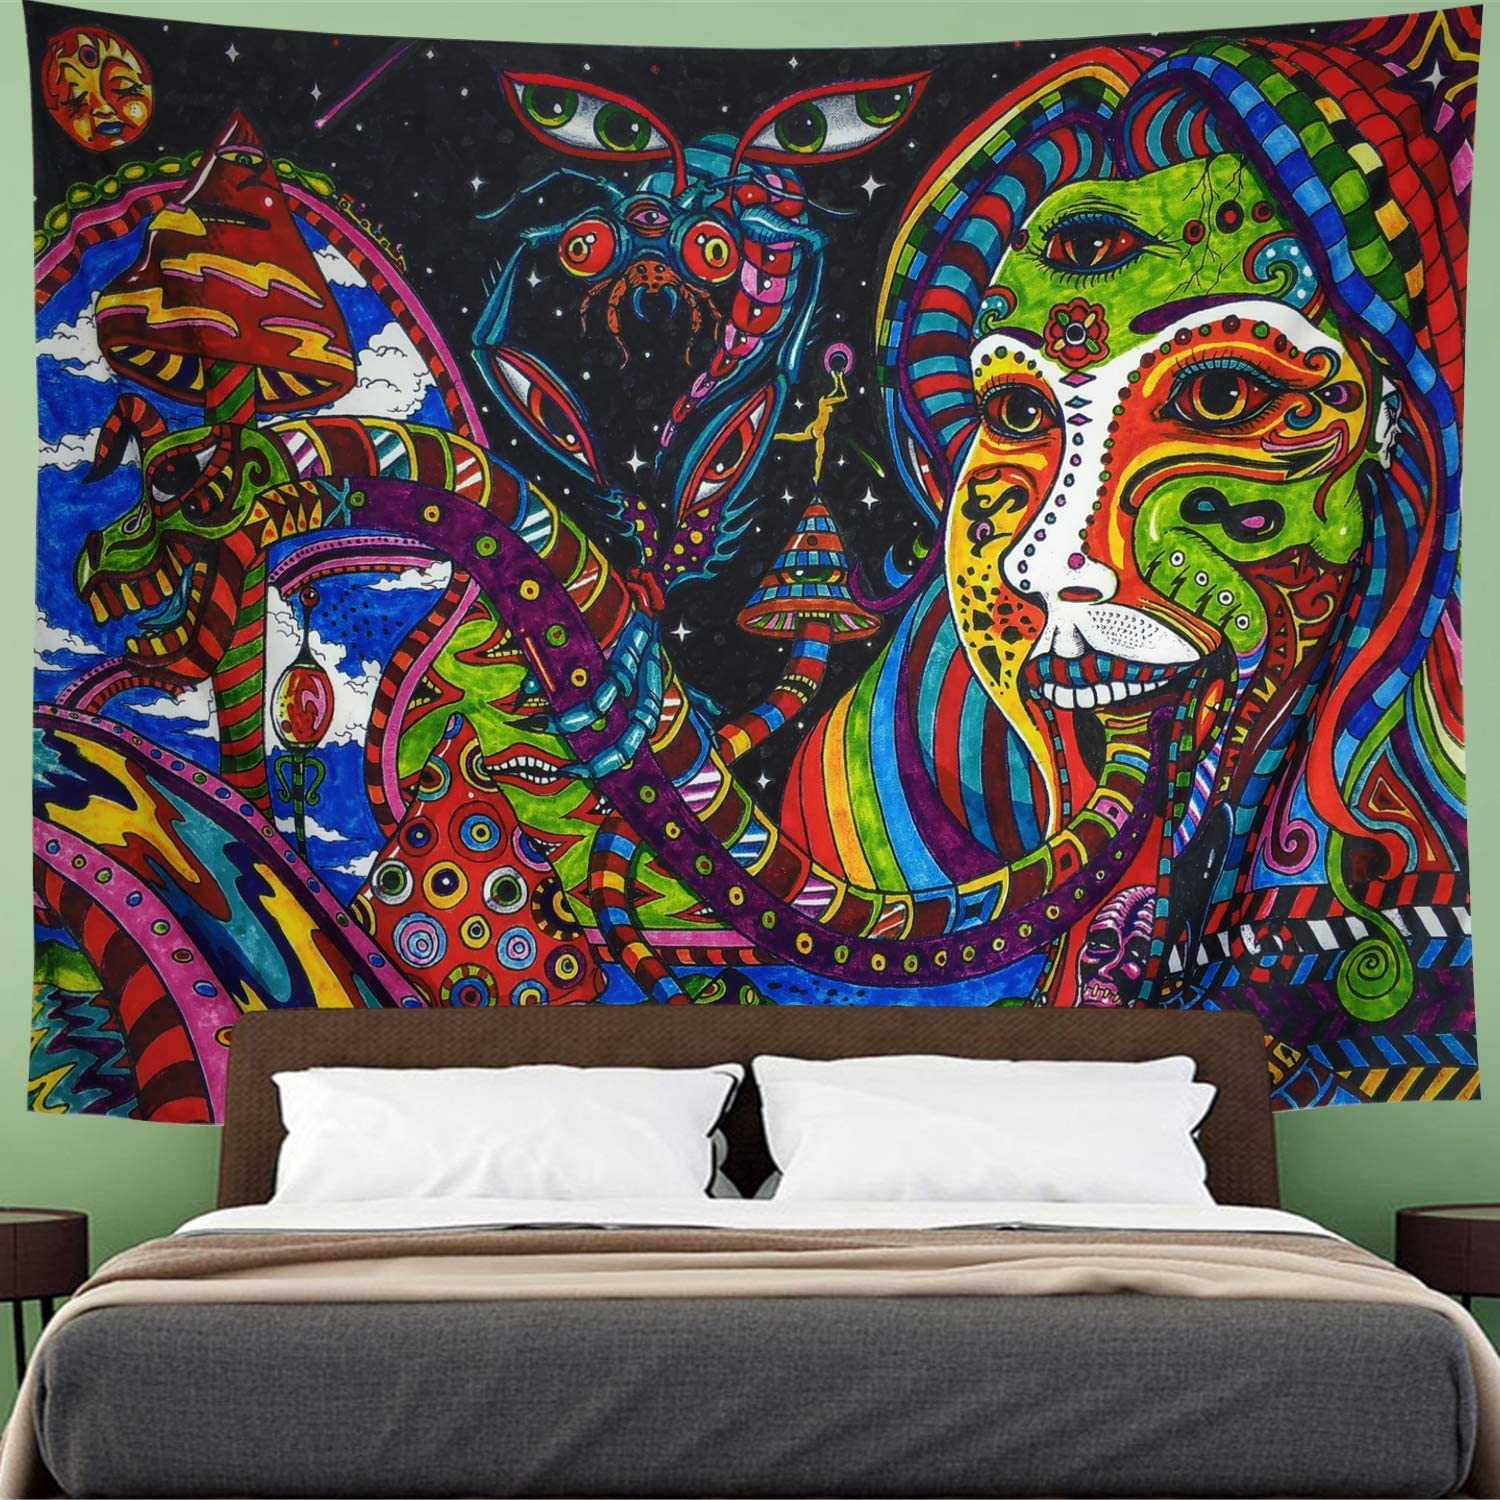 Tapestry Retro Pattern Wall Hanging Psychedelic Tongue Tapestry Abstract Figure Wall Tapestry Hippie Animal Tapestry Ethnical Intricate Wall Decor for Bedroom Living Room Dorm (59